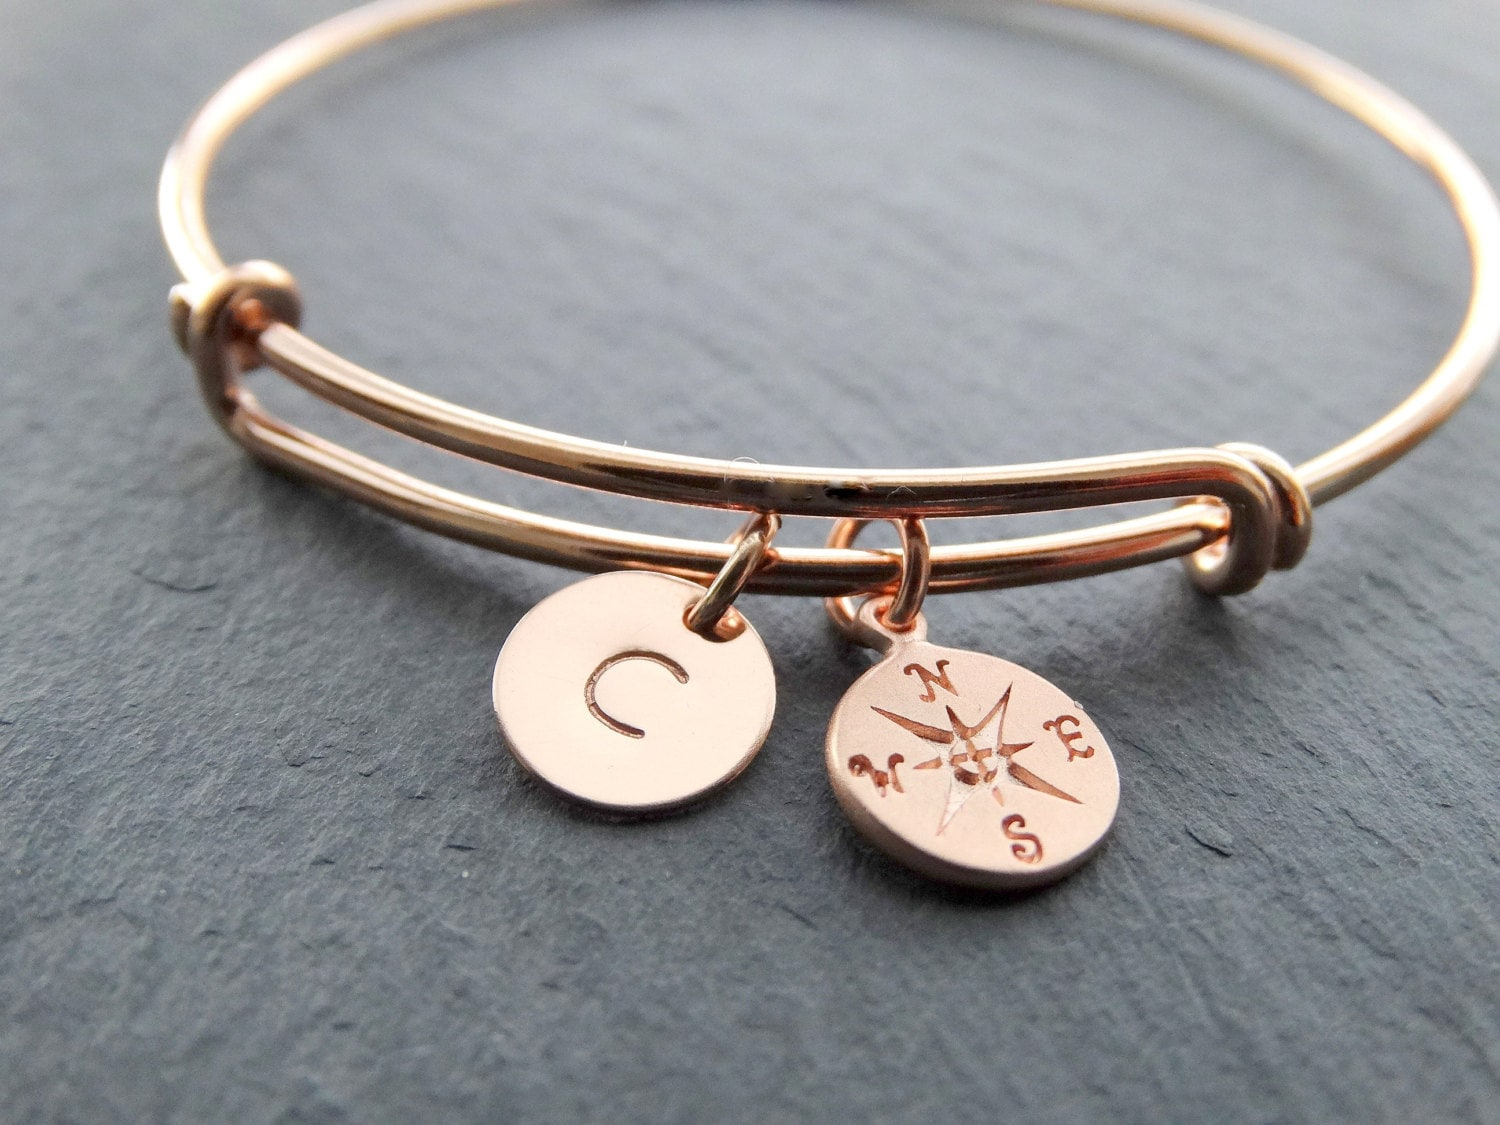 charmed gold pinterest best charm material things ideas tattoo charms bangle on jewelry rose pandora bracelets images bangles